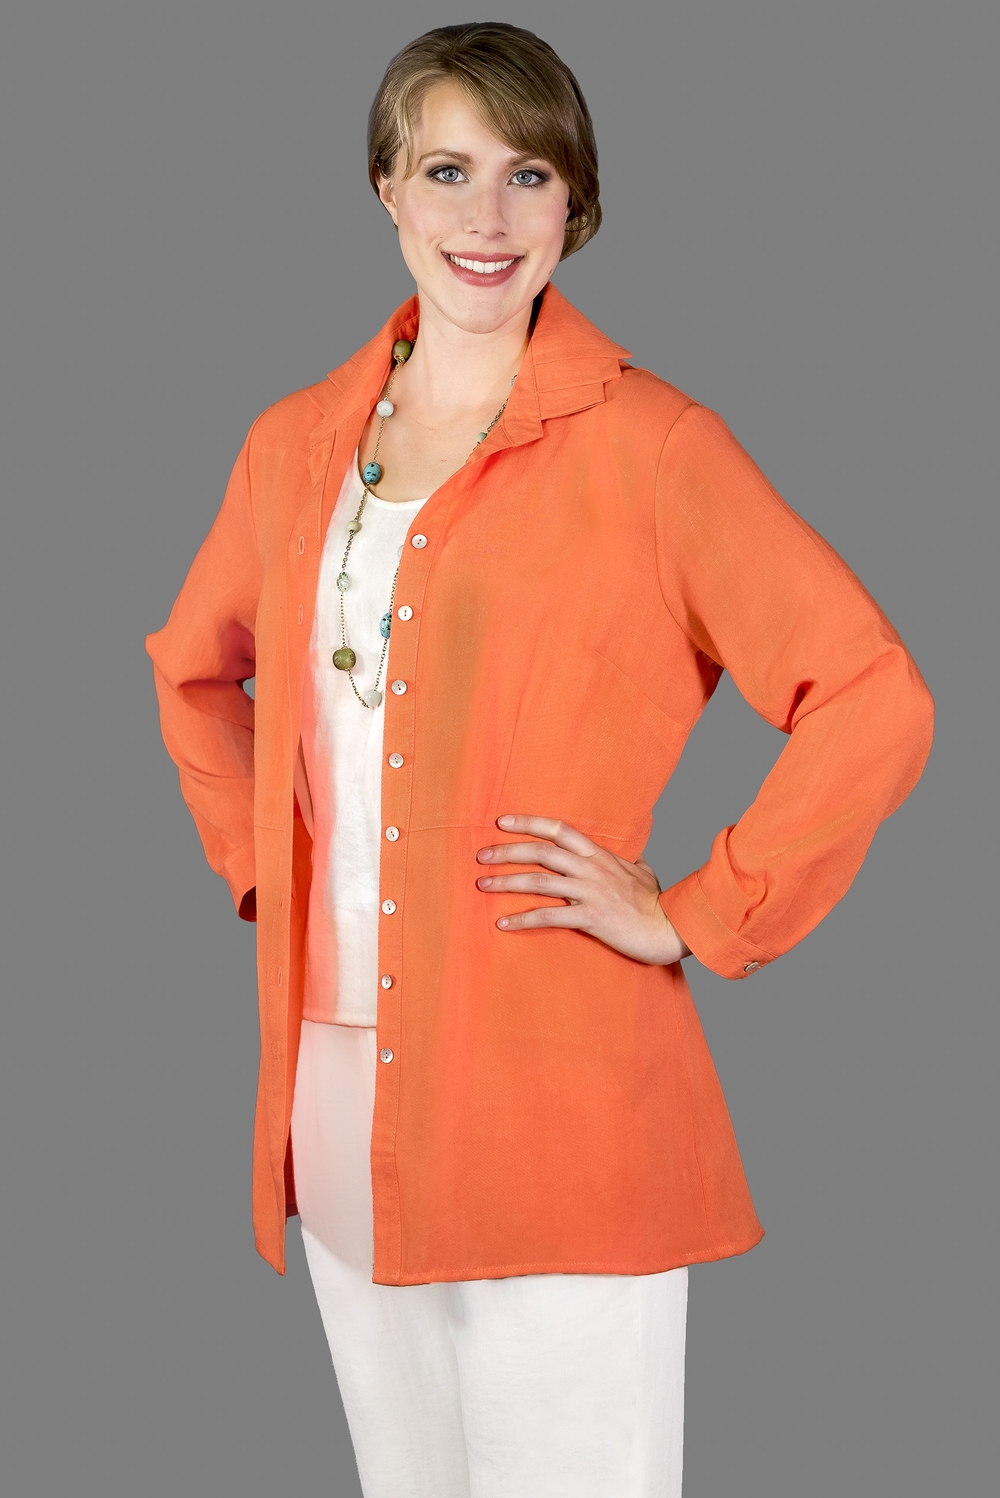 AA169 - Triple Collar Blouse    CL3979 - Tangerine